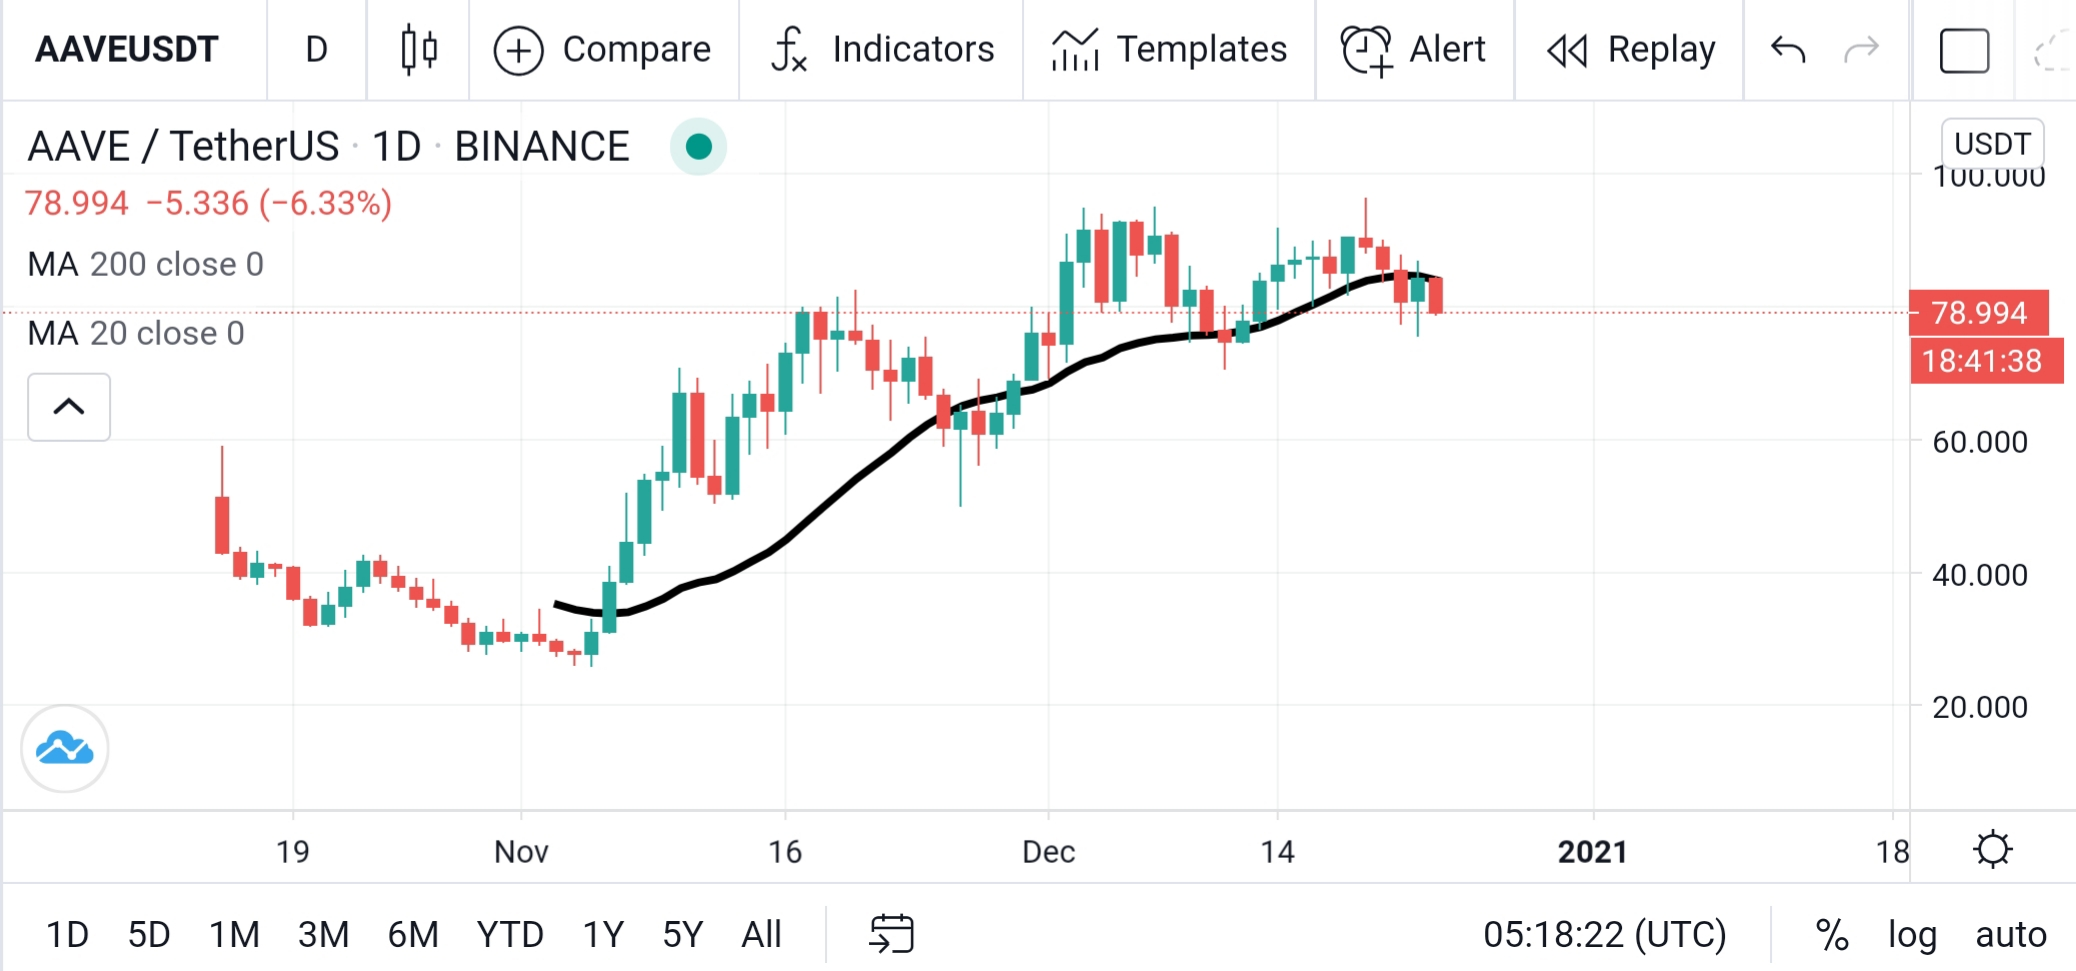 AAVE - USDT